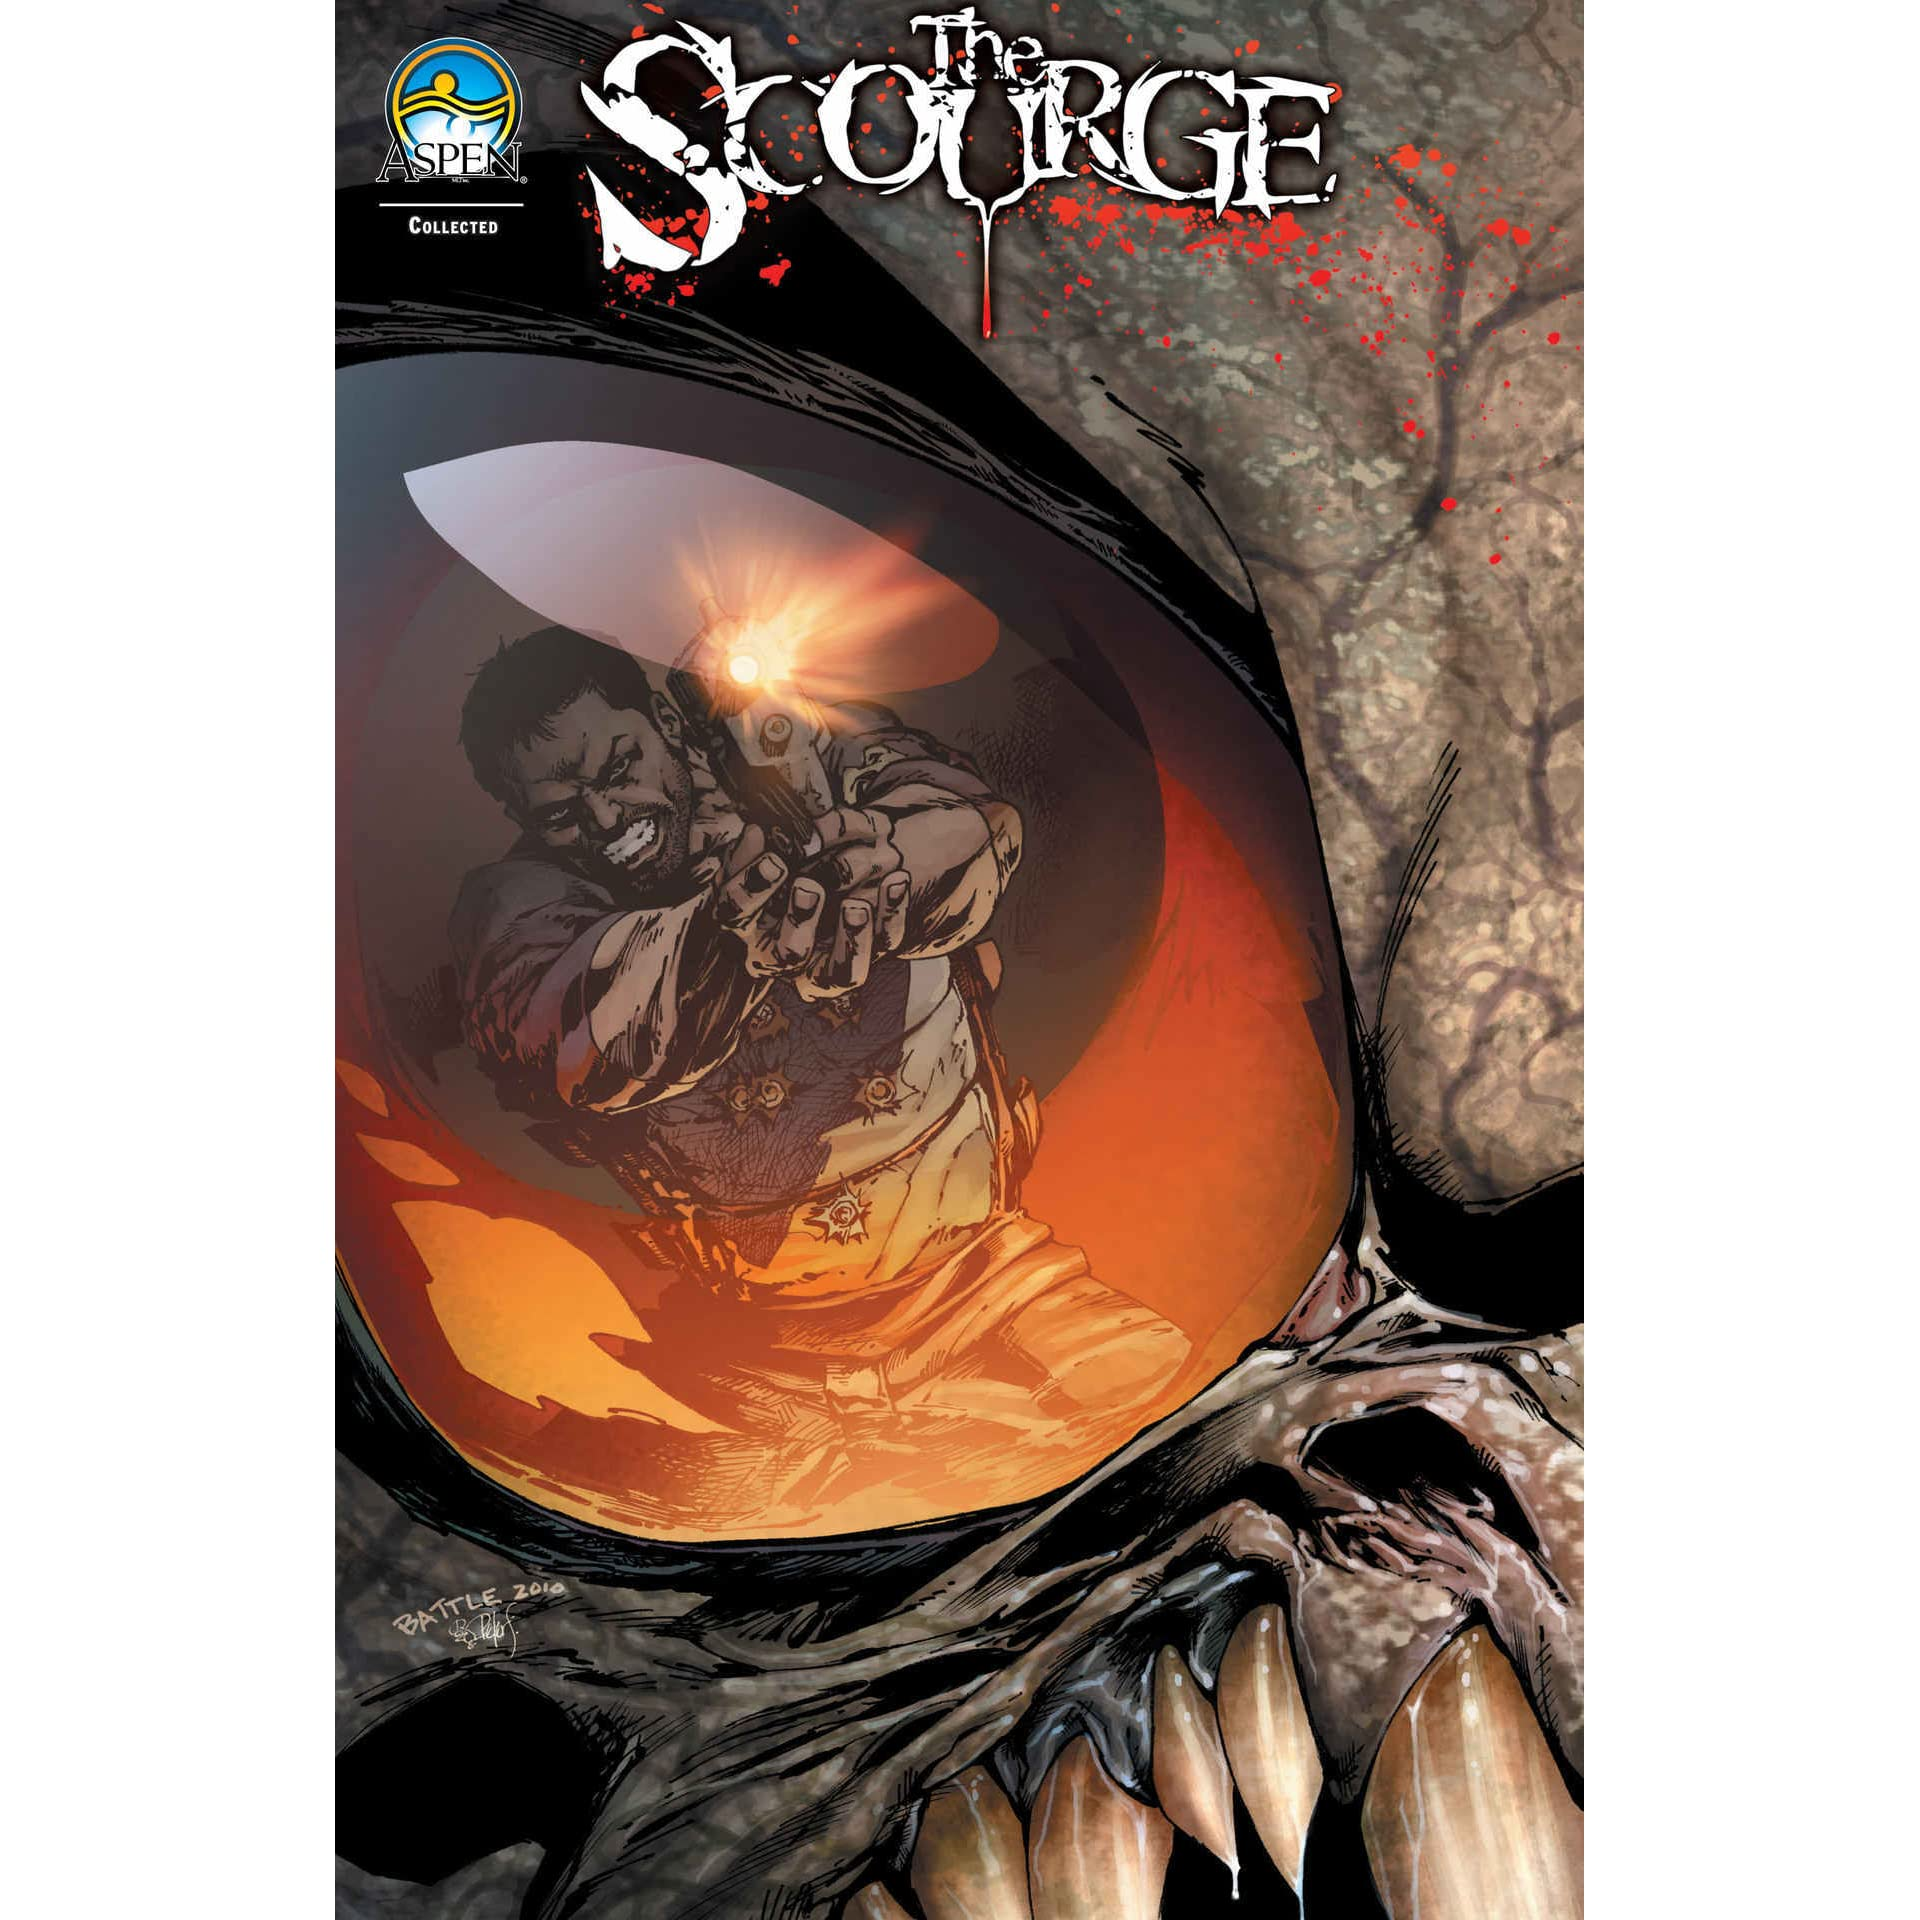 The Scourge #2 (Scourge Vol. 1)